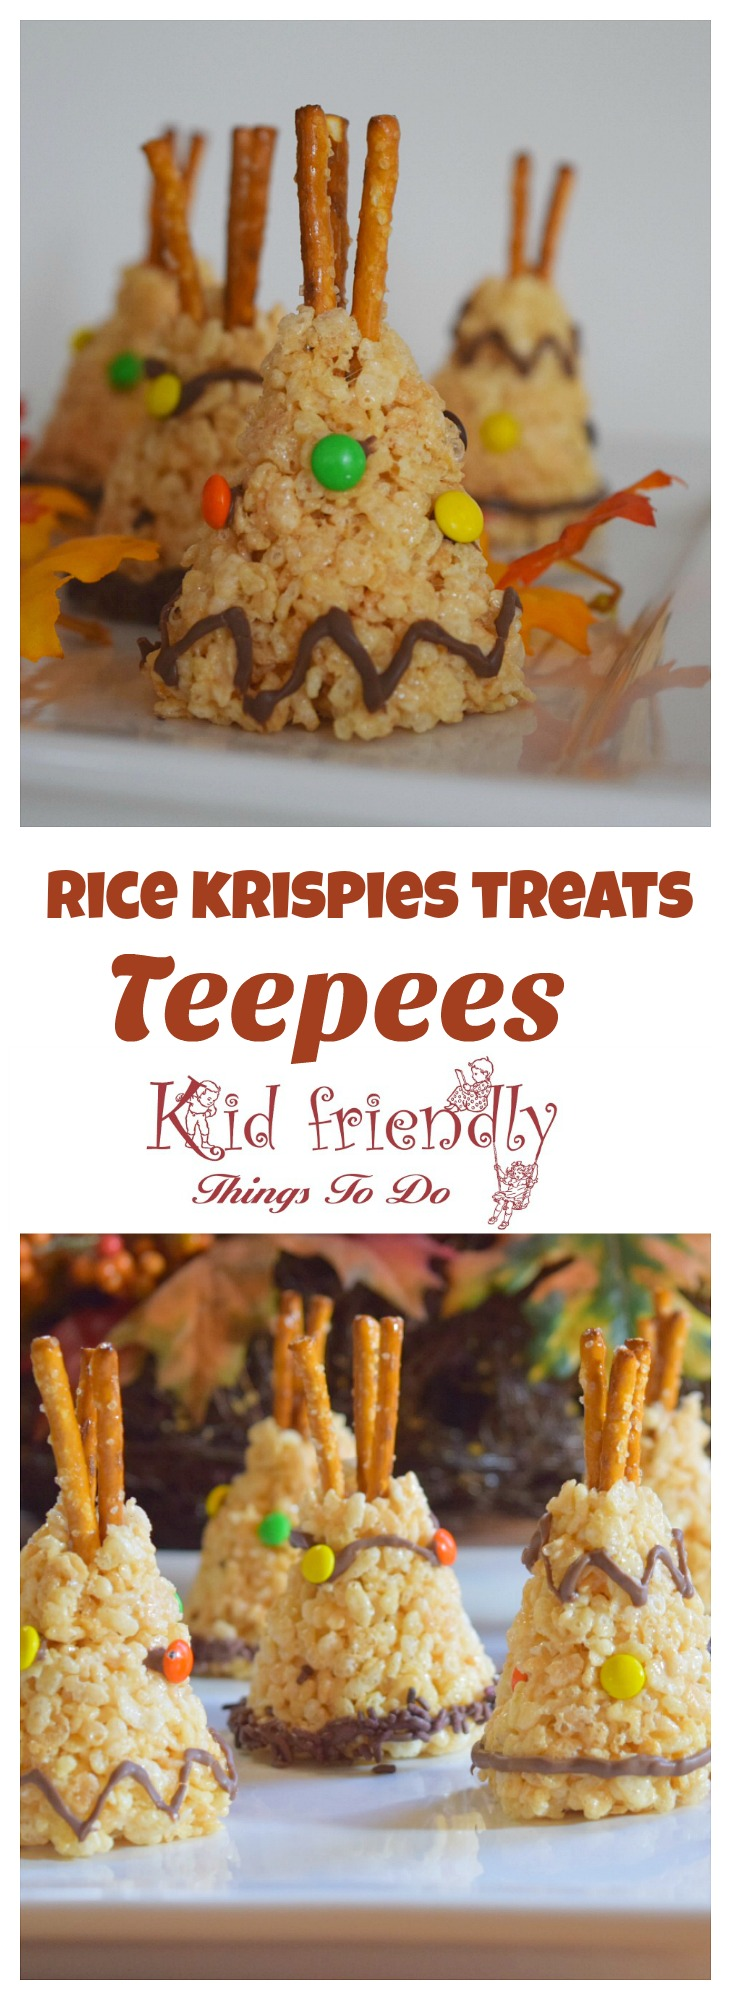 Perfect for Thanksgiving, or a Native American fun food idea for kids. This is such a cute and simple treat for kids! www.kidfriendlythingstodocom